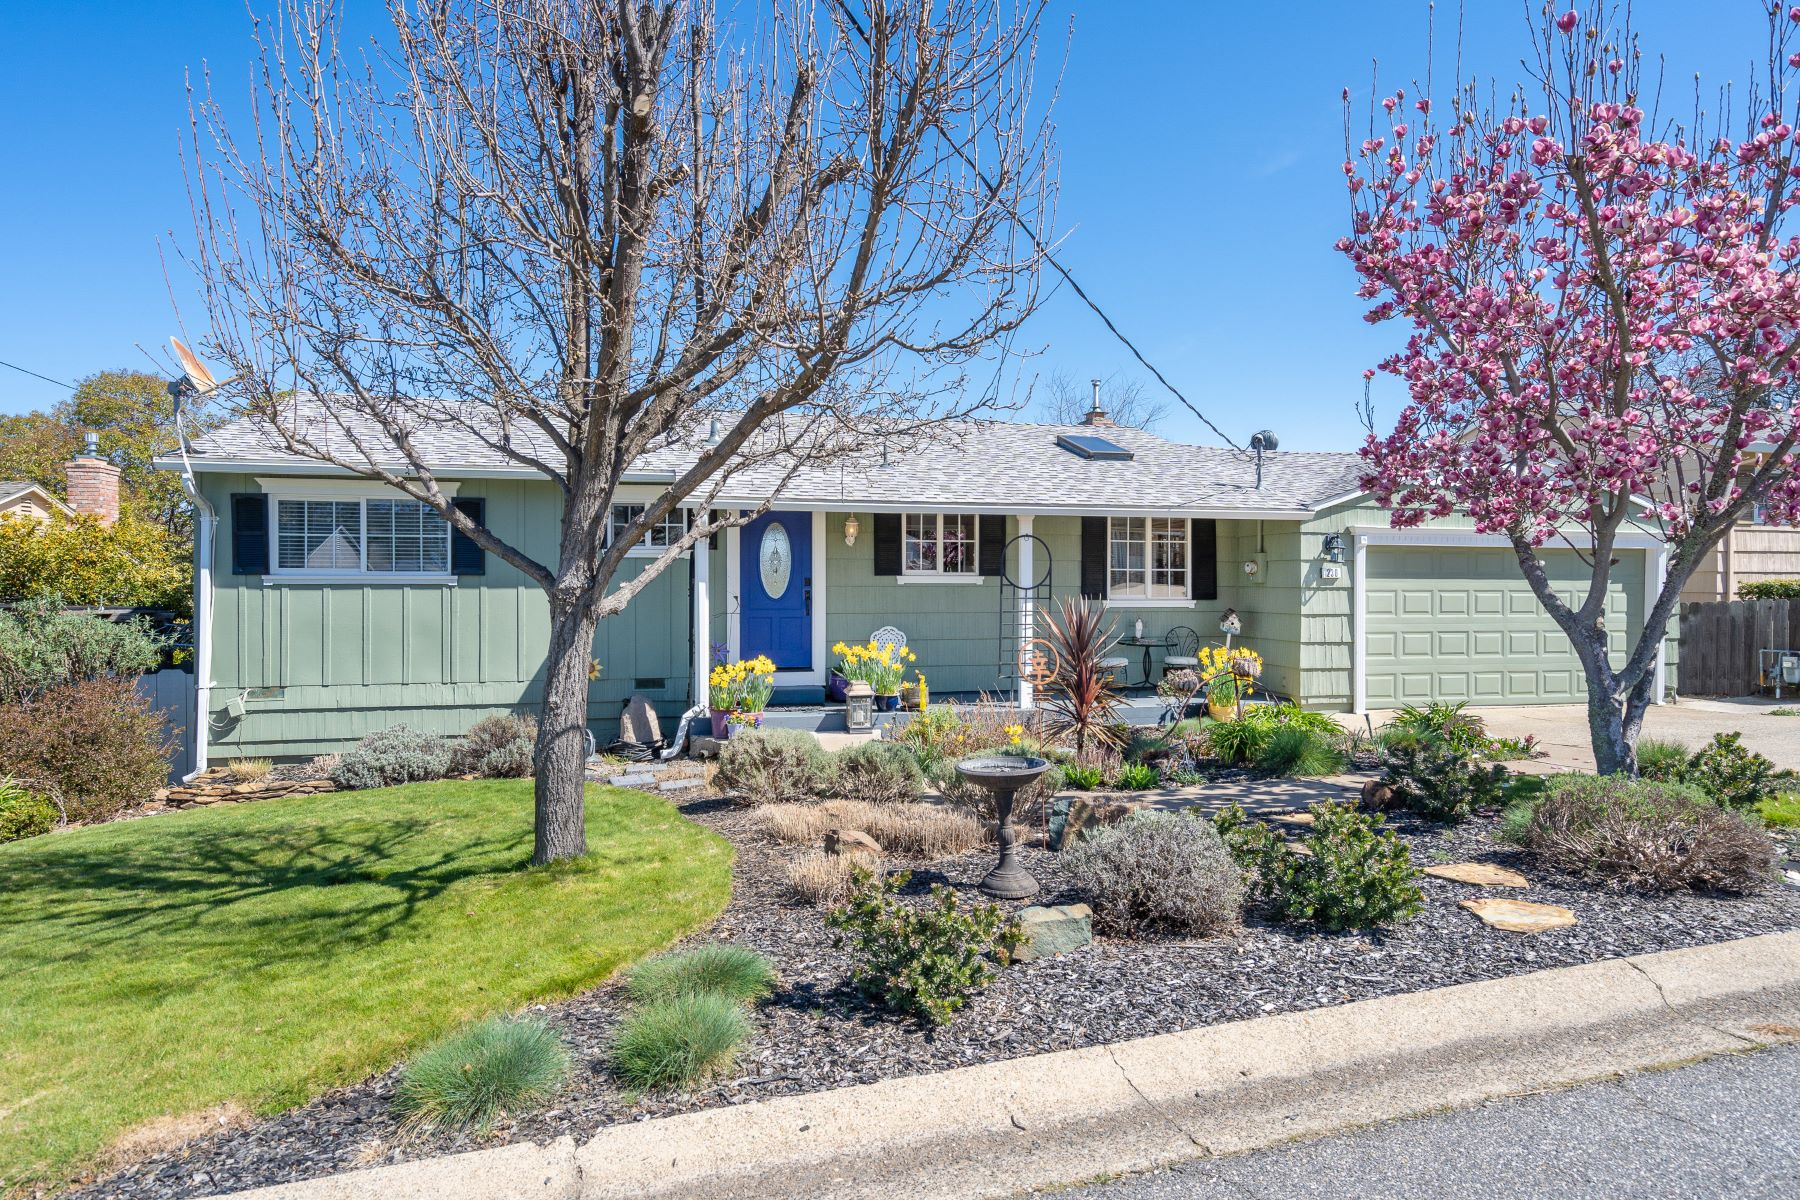 Single Family Home for Active at Sutter Creek Chamer 230 Patricia Lane Sutter Creek, California 95685 United States